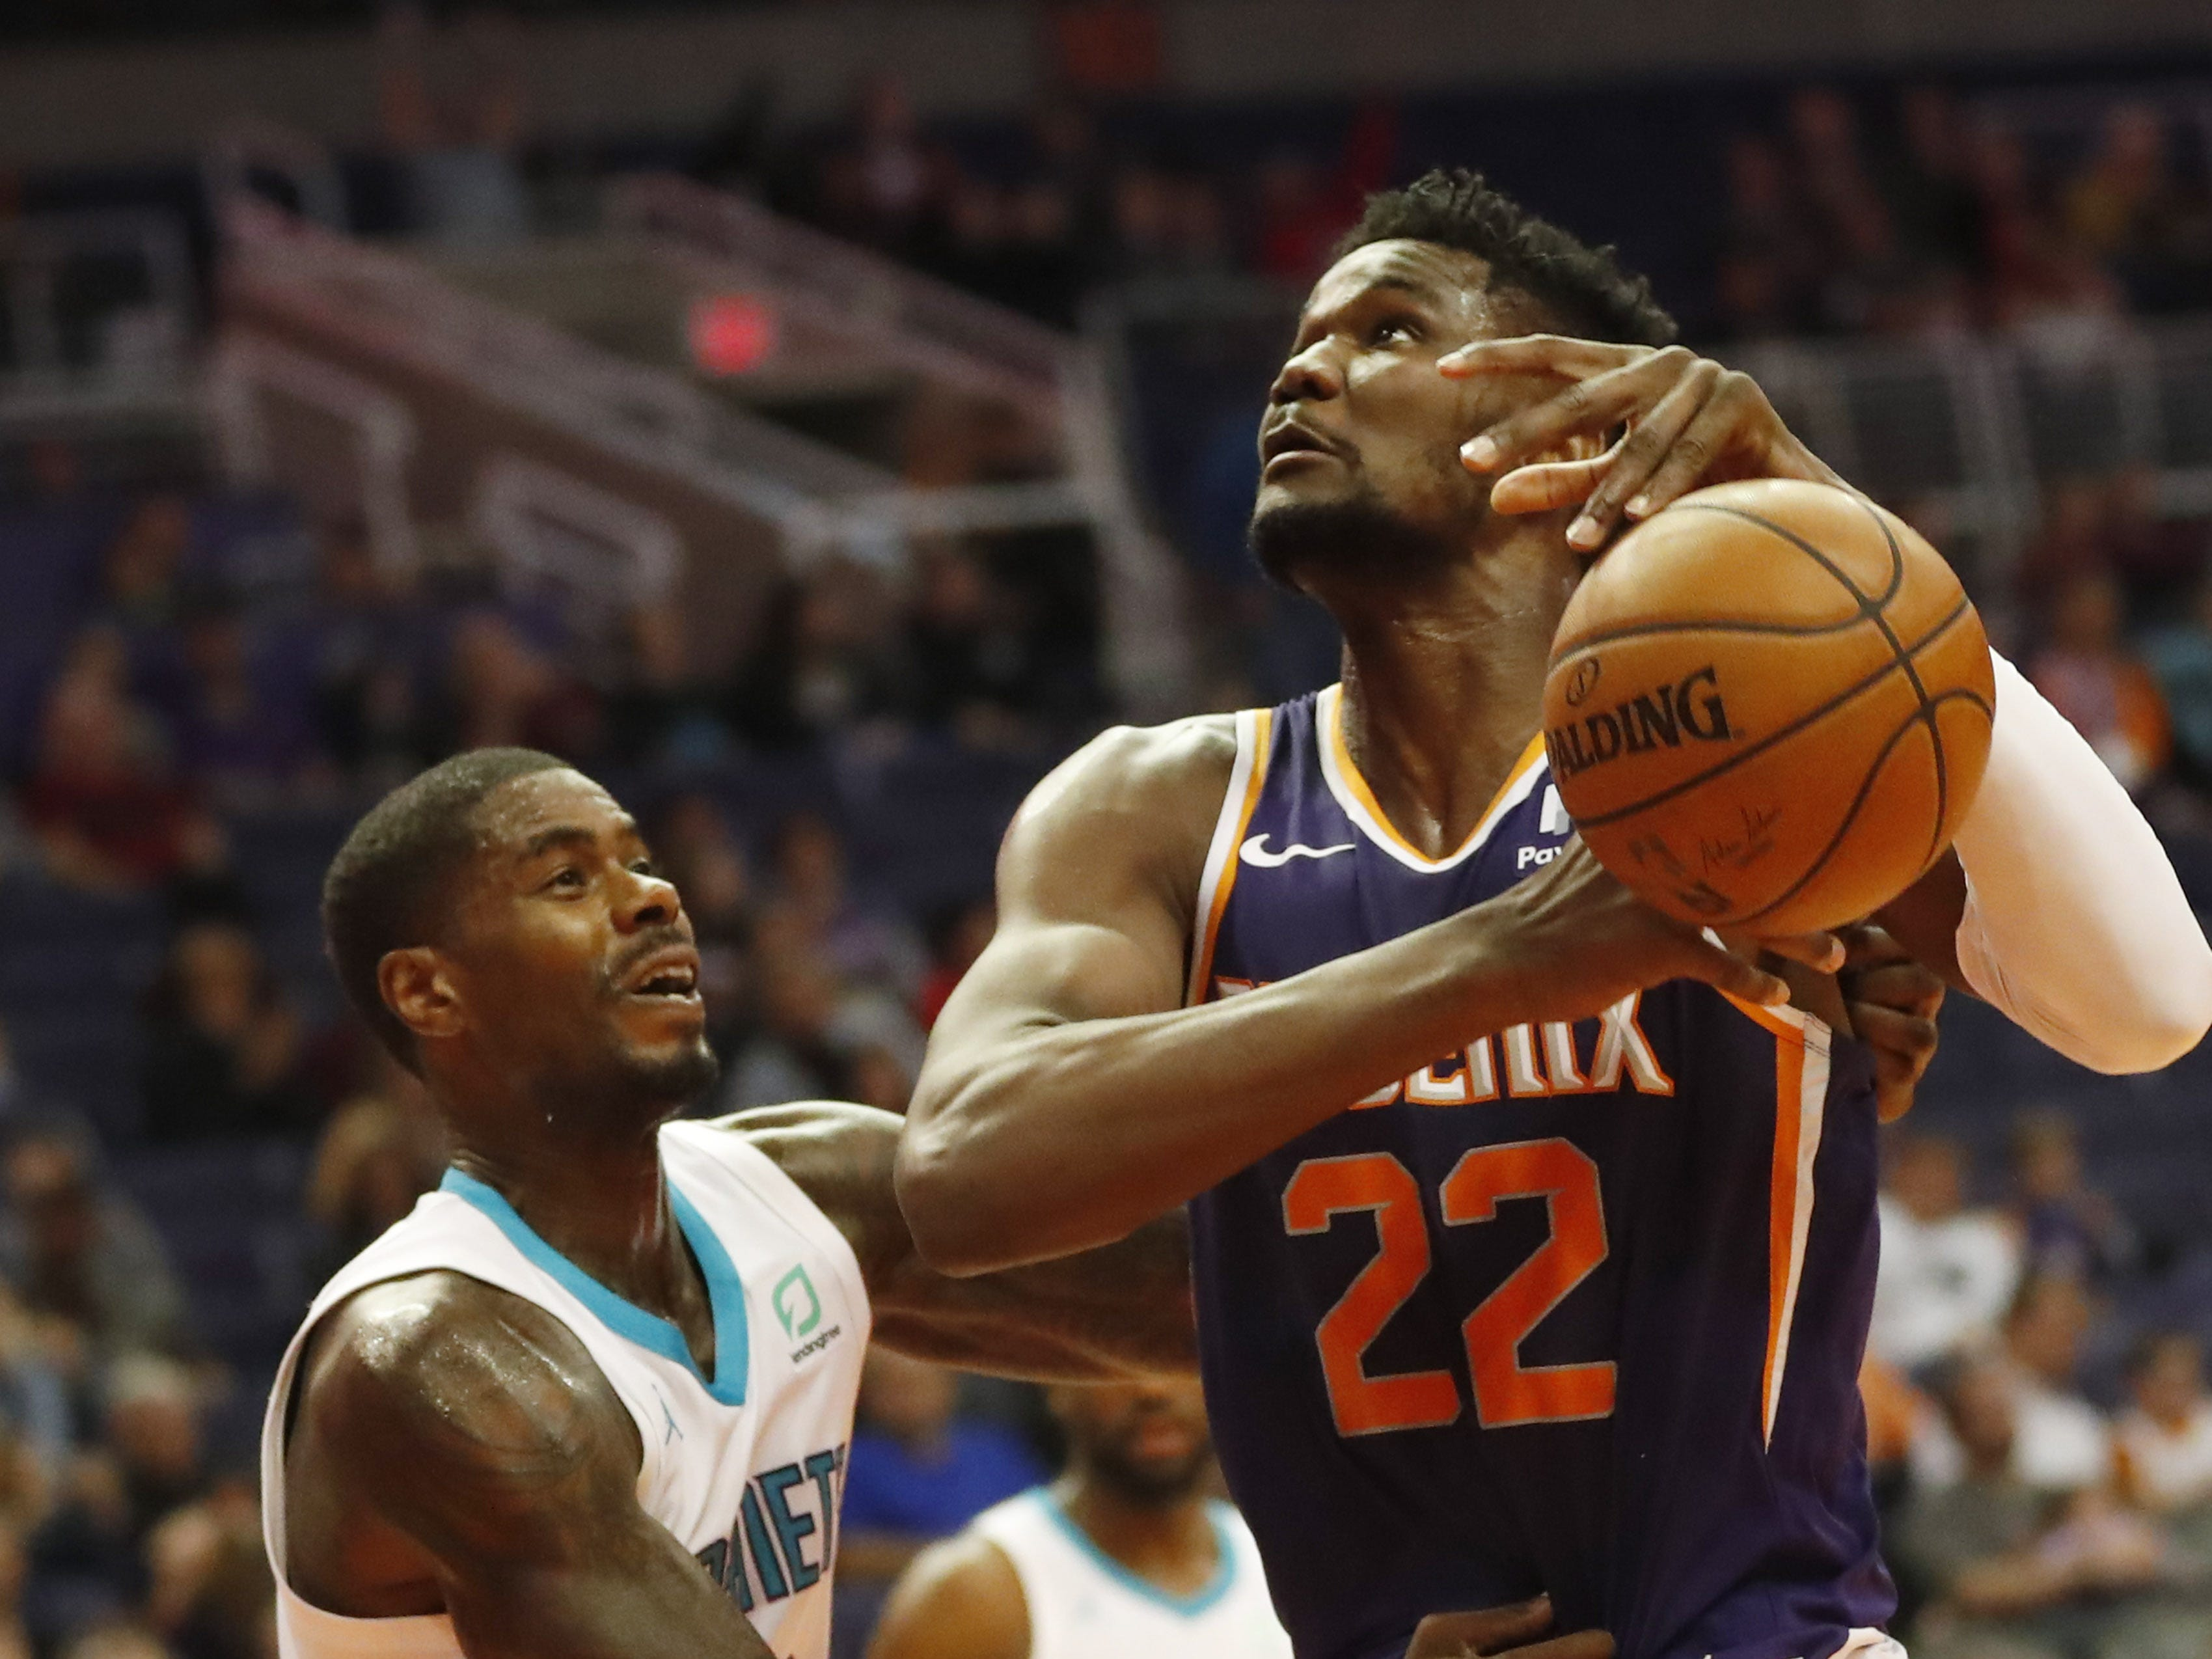 Phoenix Suns center Deandre Ayton (22) is fouled by Charlotte Hornets forward Marvin Williams (2) during the first quarter in Phoenix January 6, 2019.